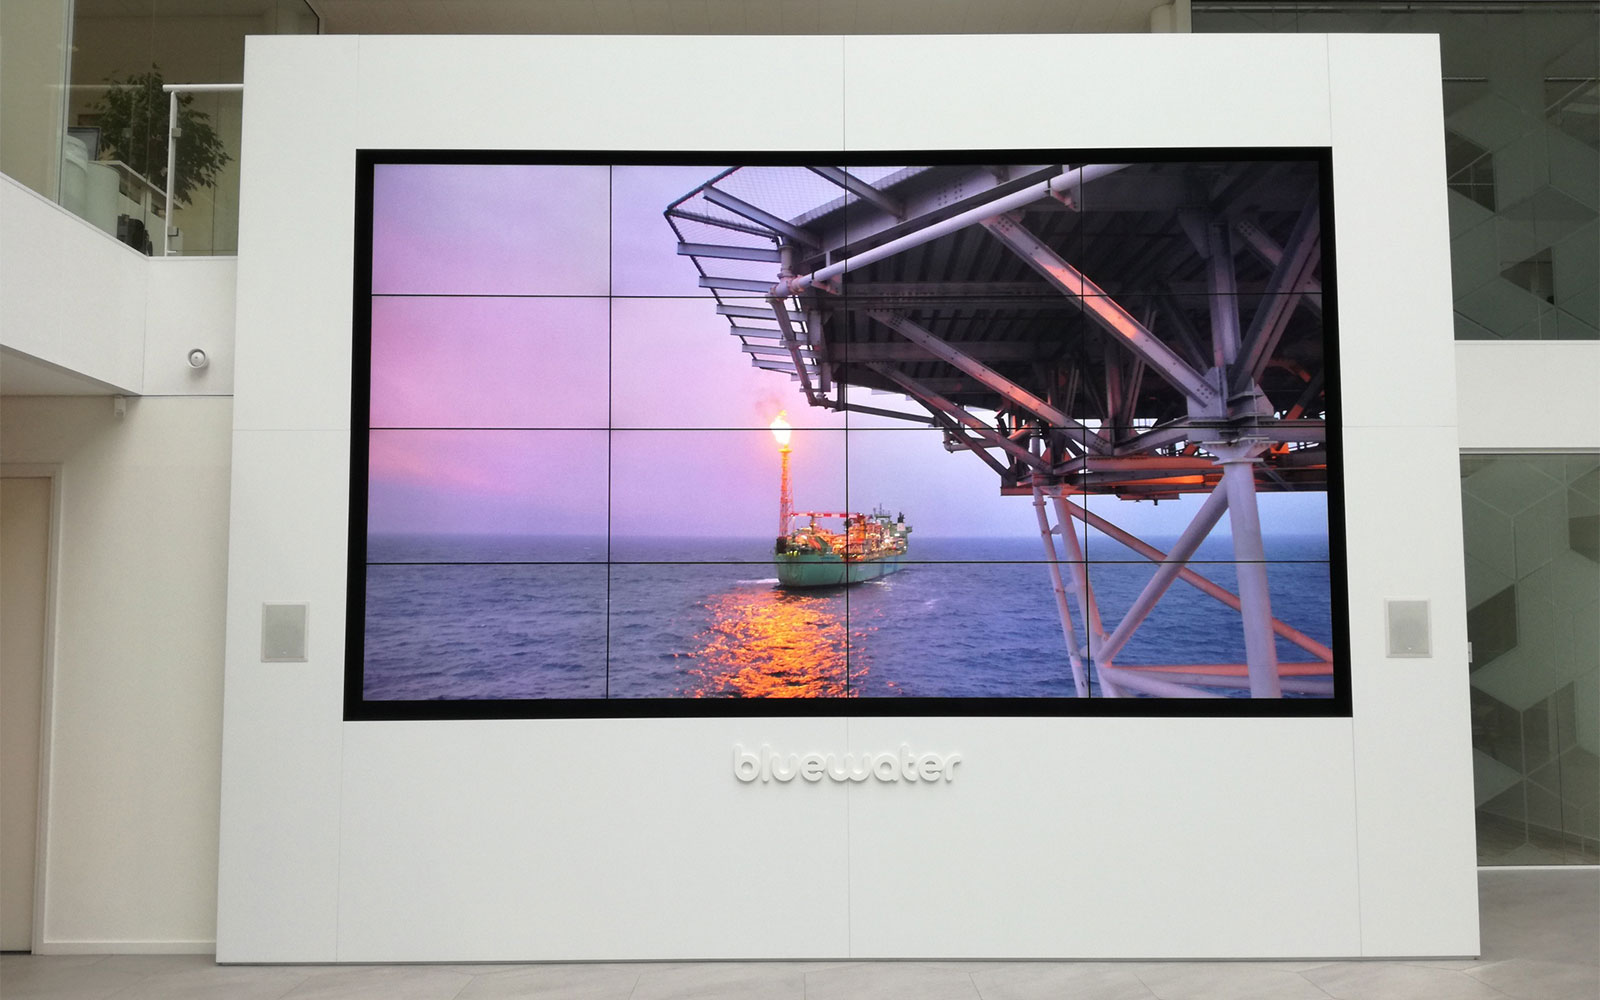 Video wall - CleverDisplay - Bluewater - narrowcasting